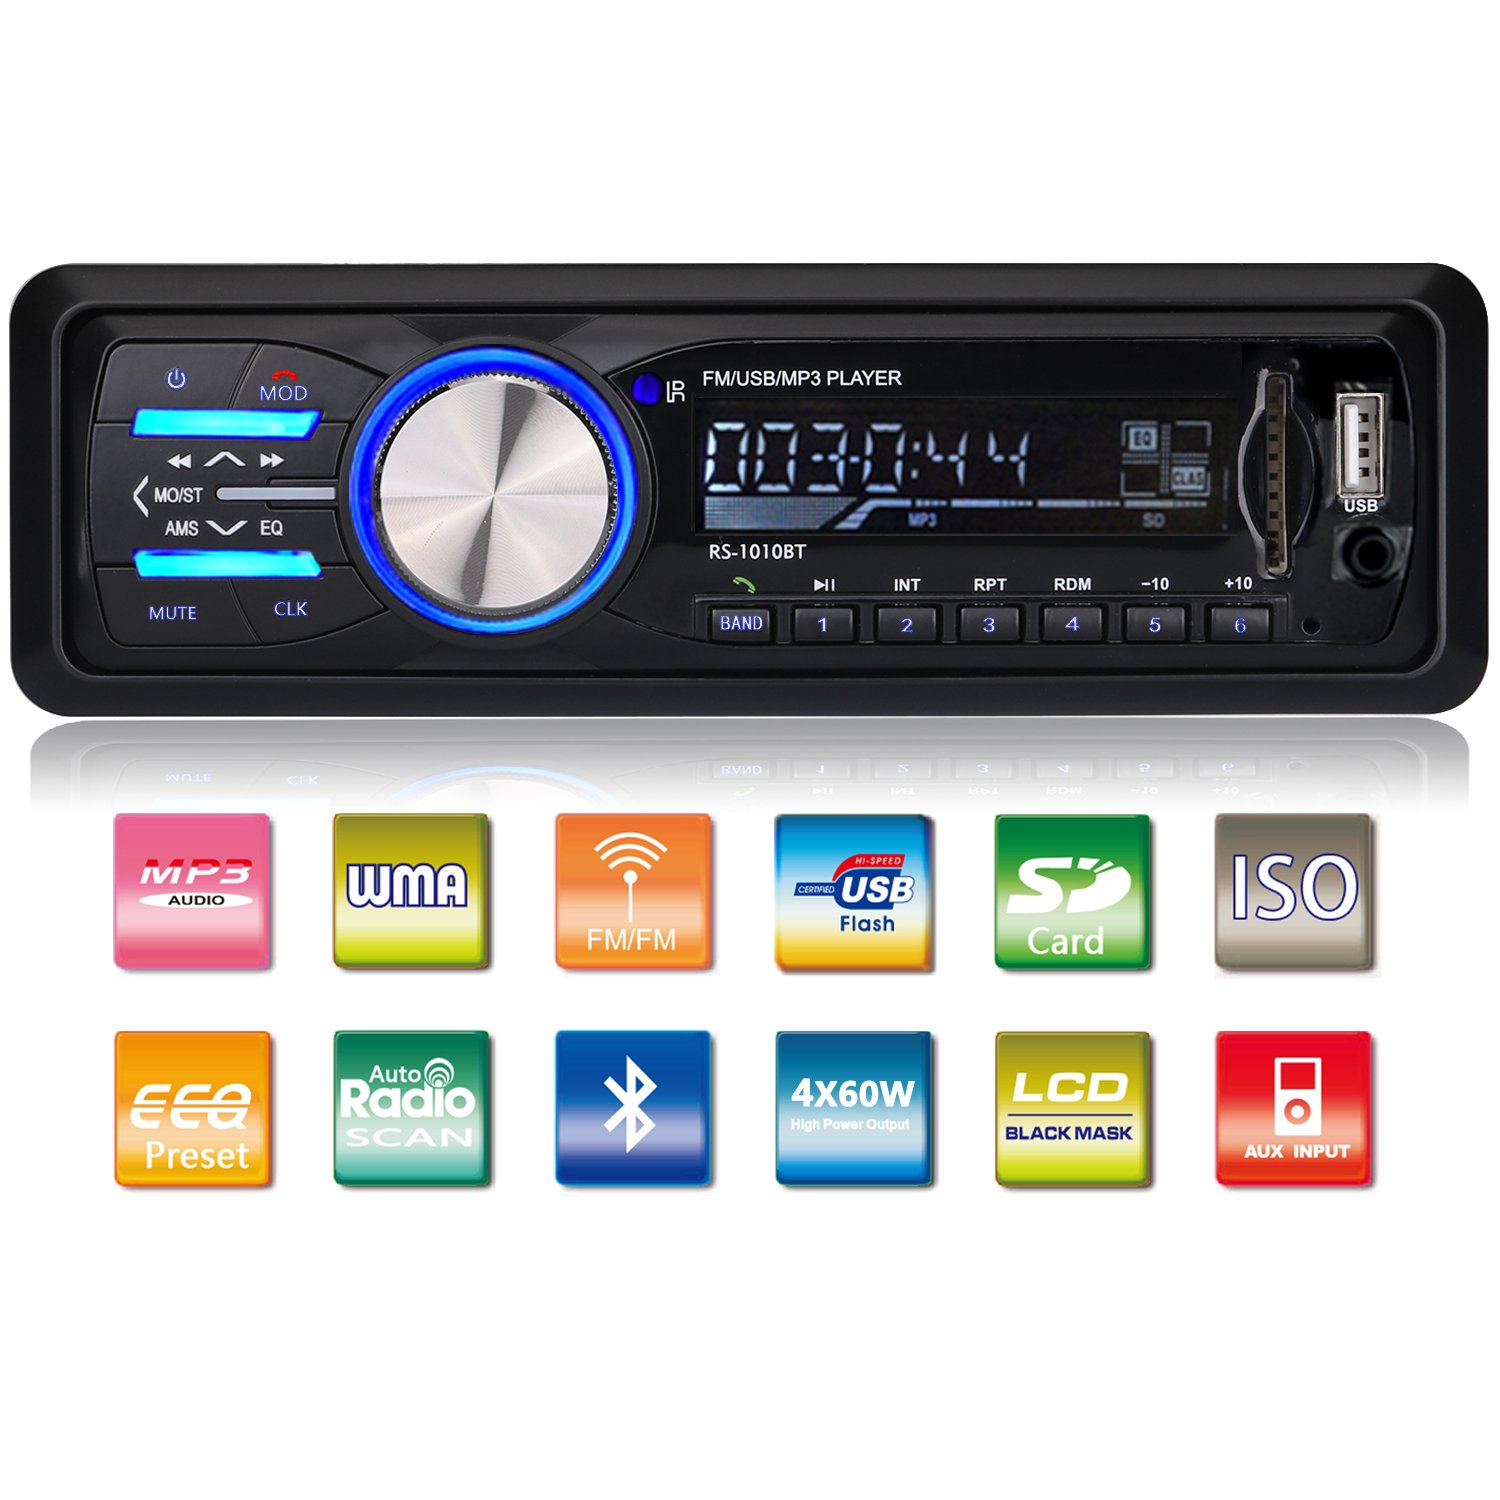 Gemoor car stereo receiver with bluetooth in dash single din car radio mp3